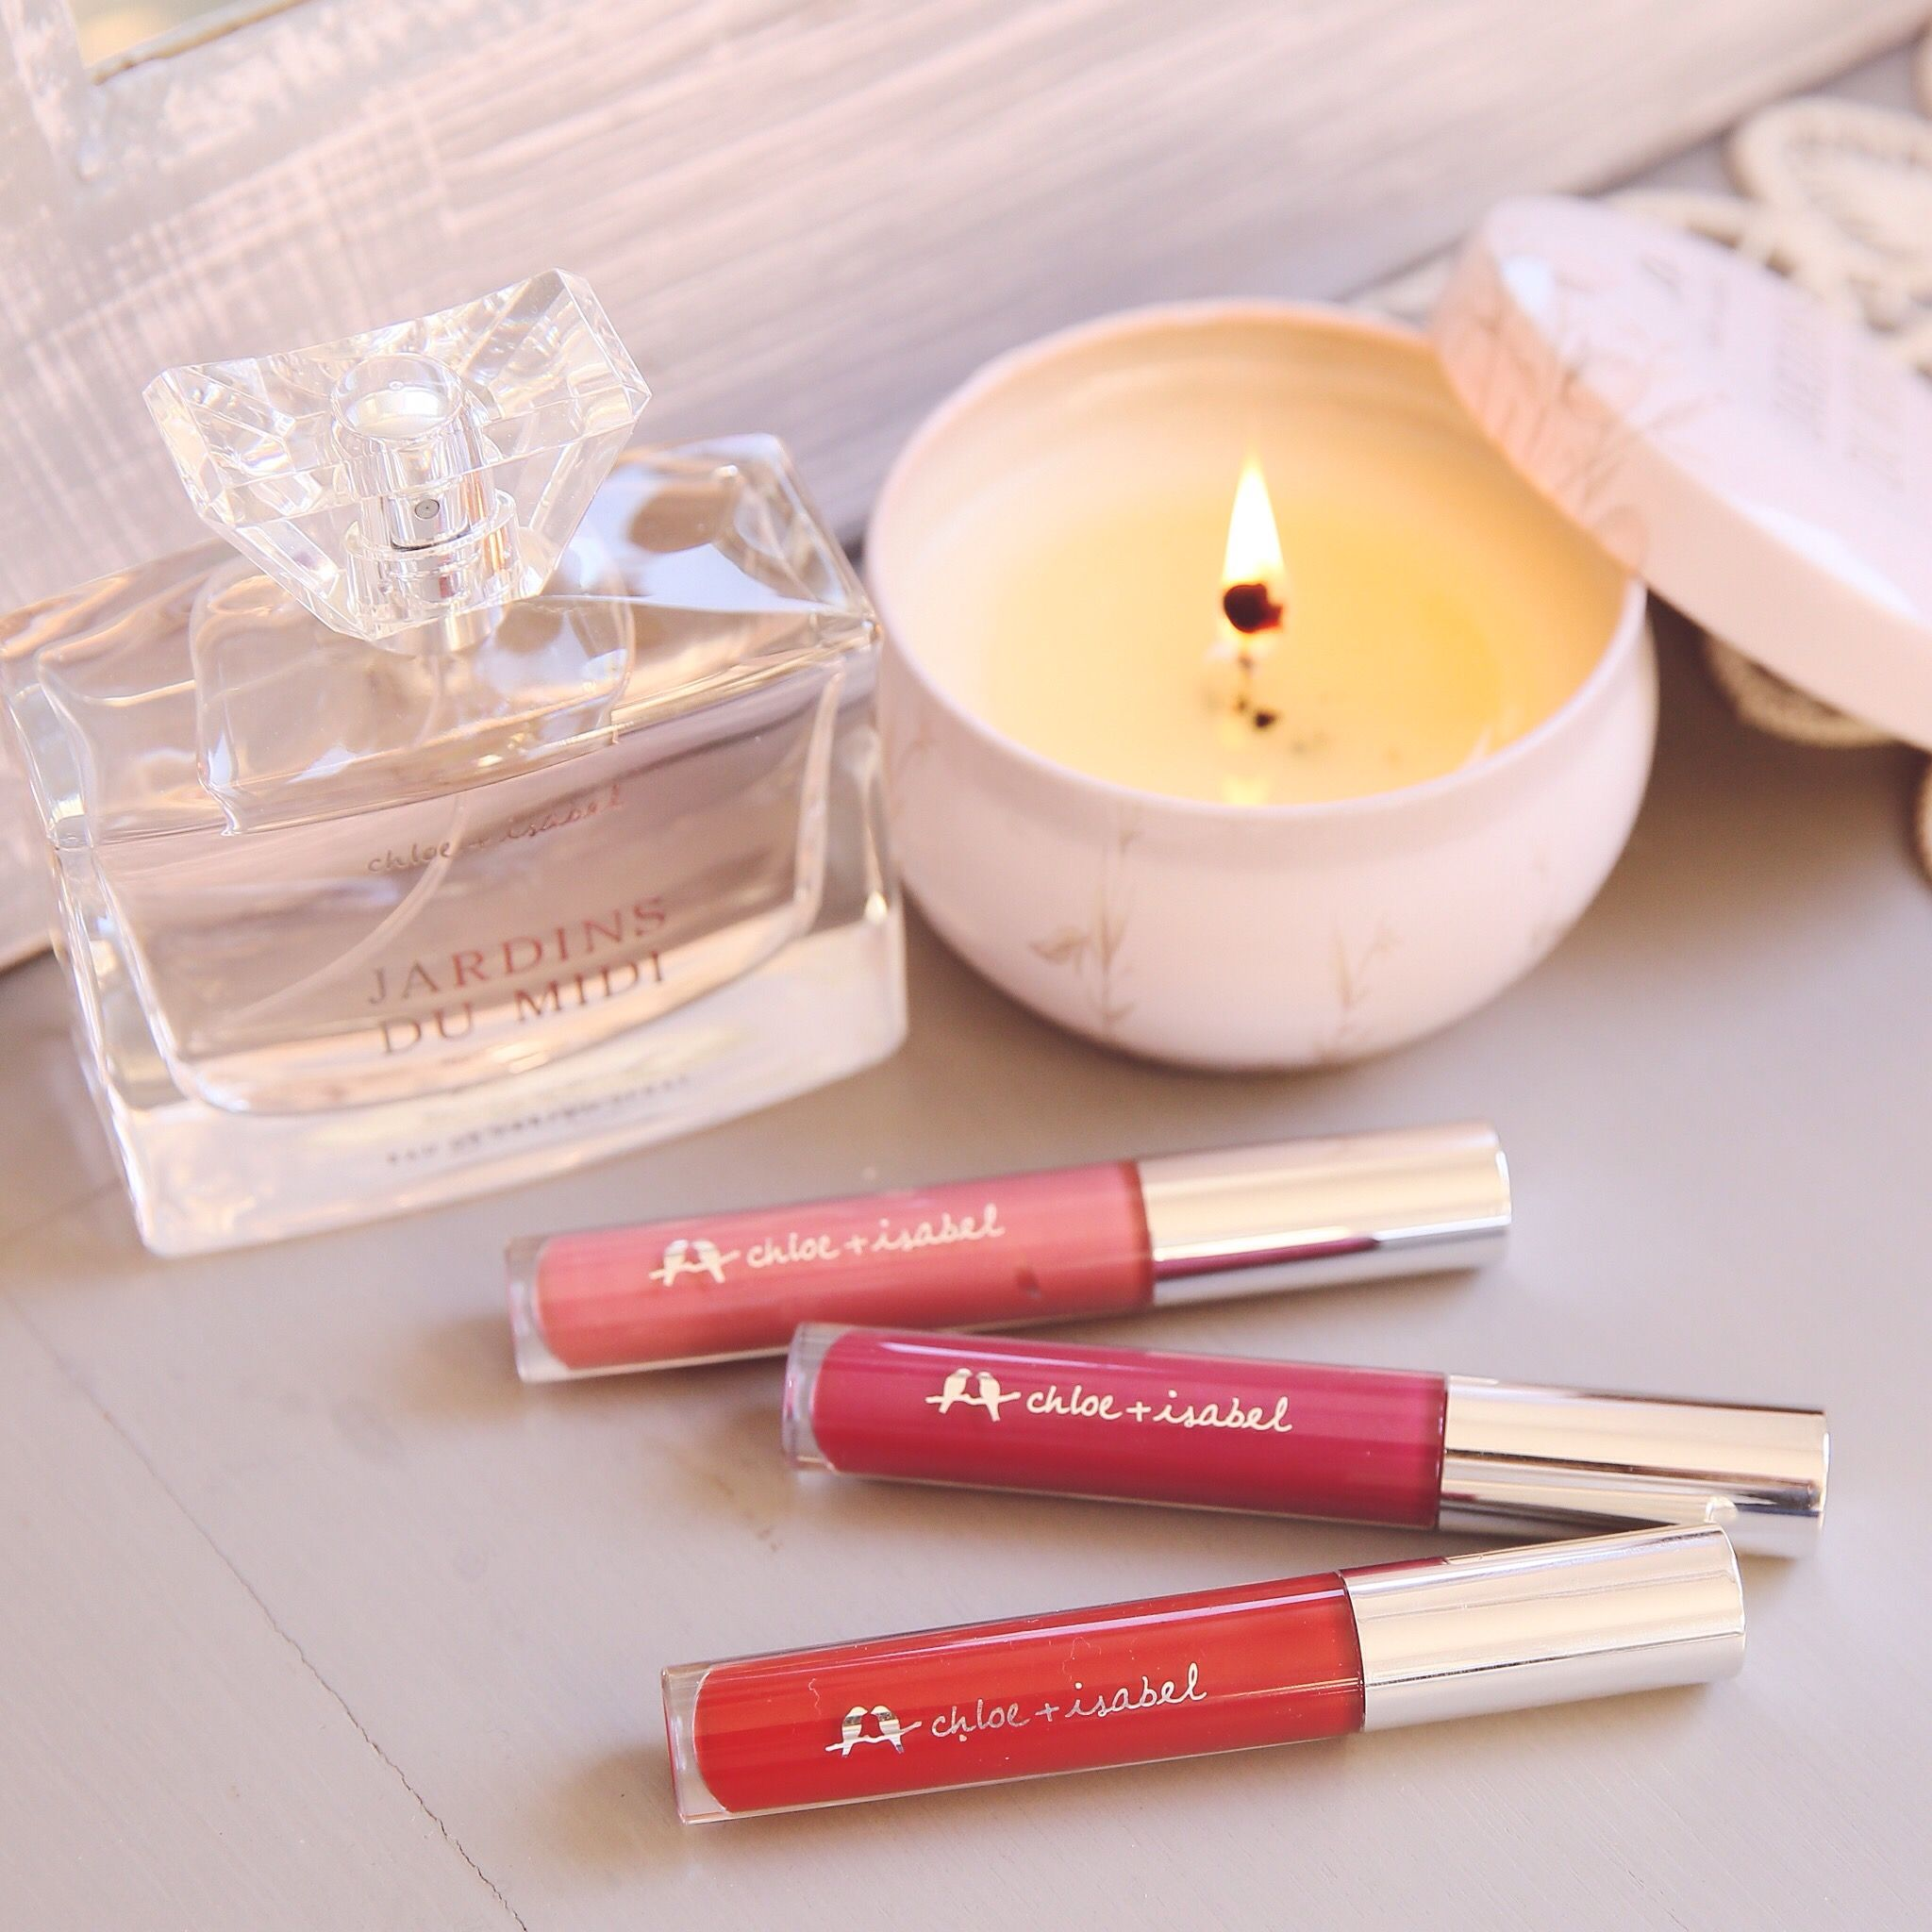 ca2afd3780ca Give a gift of color! Shop Beauty + Home on my Chloe + Isabel boutique